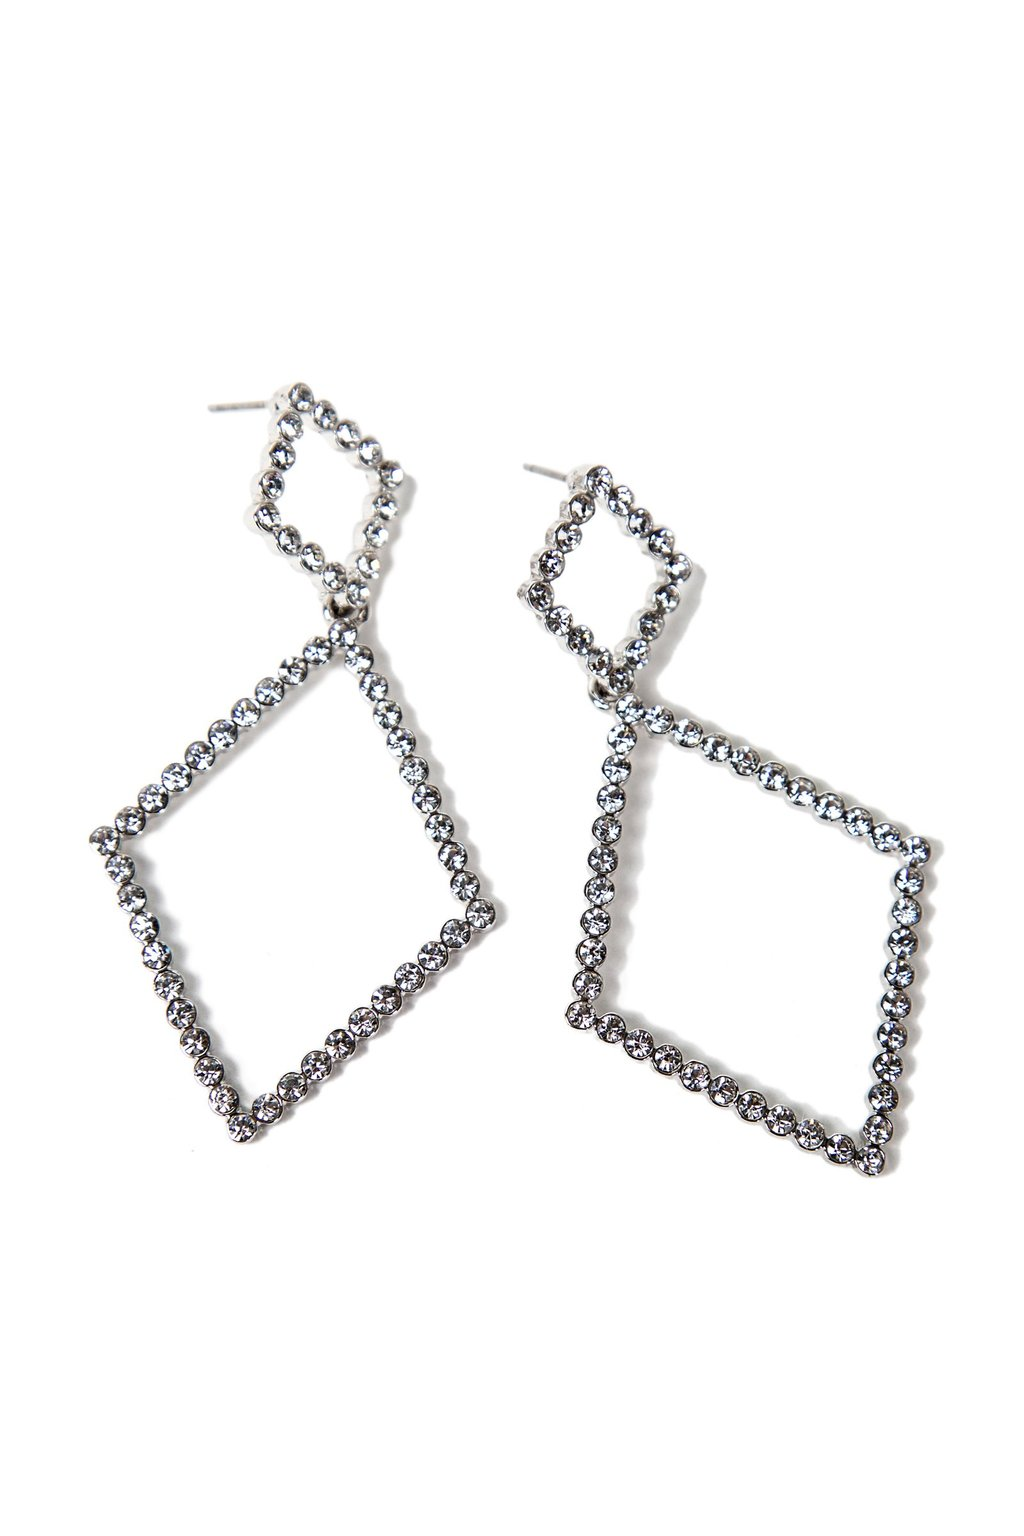 Eviee Earrings by J.ING women's clothing and accessories